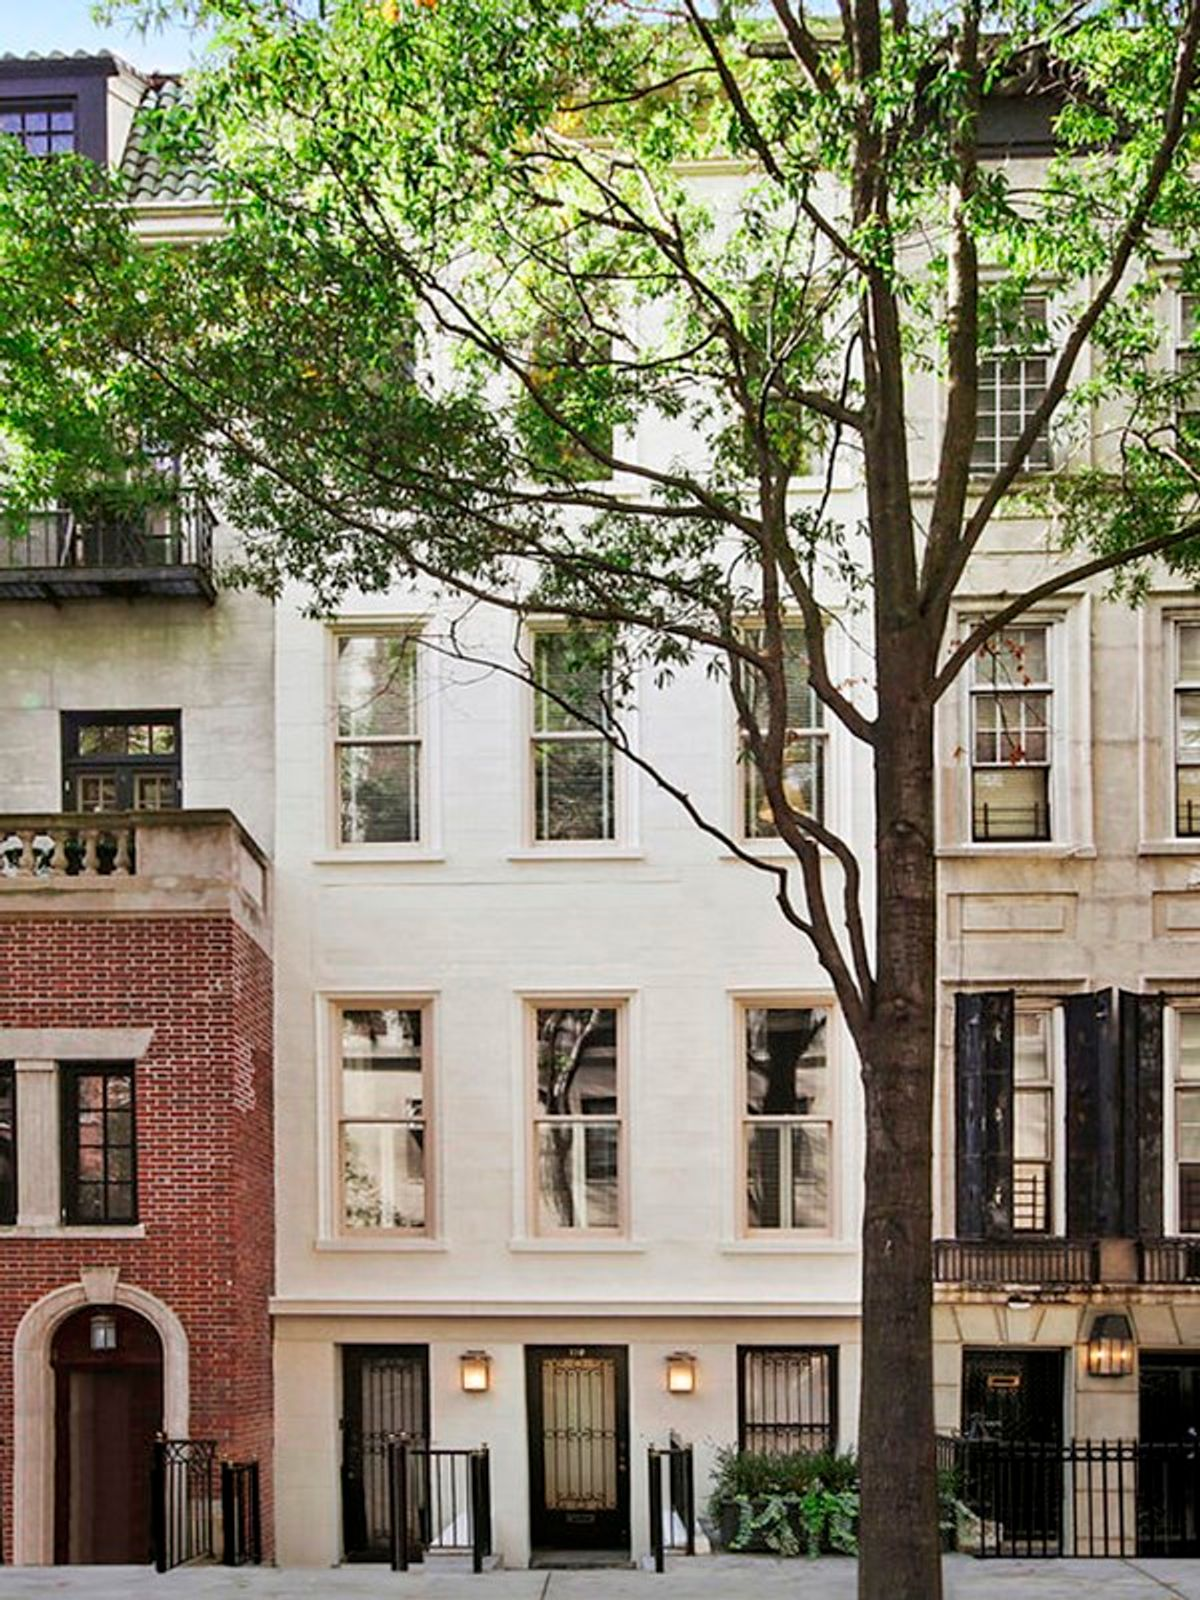 110 East 78th Street , New York NY Townhouse - New York City Real Estate